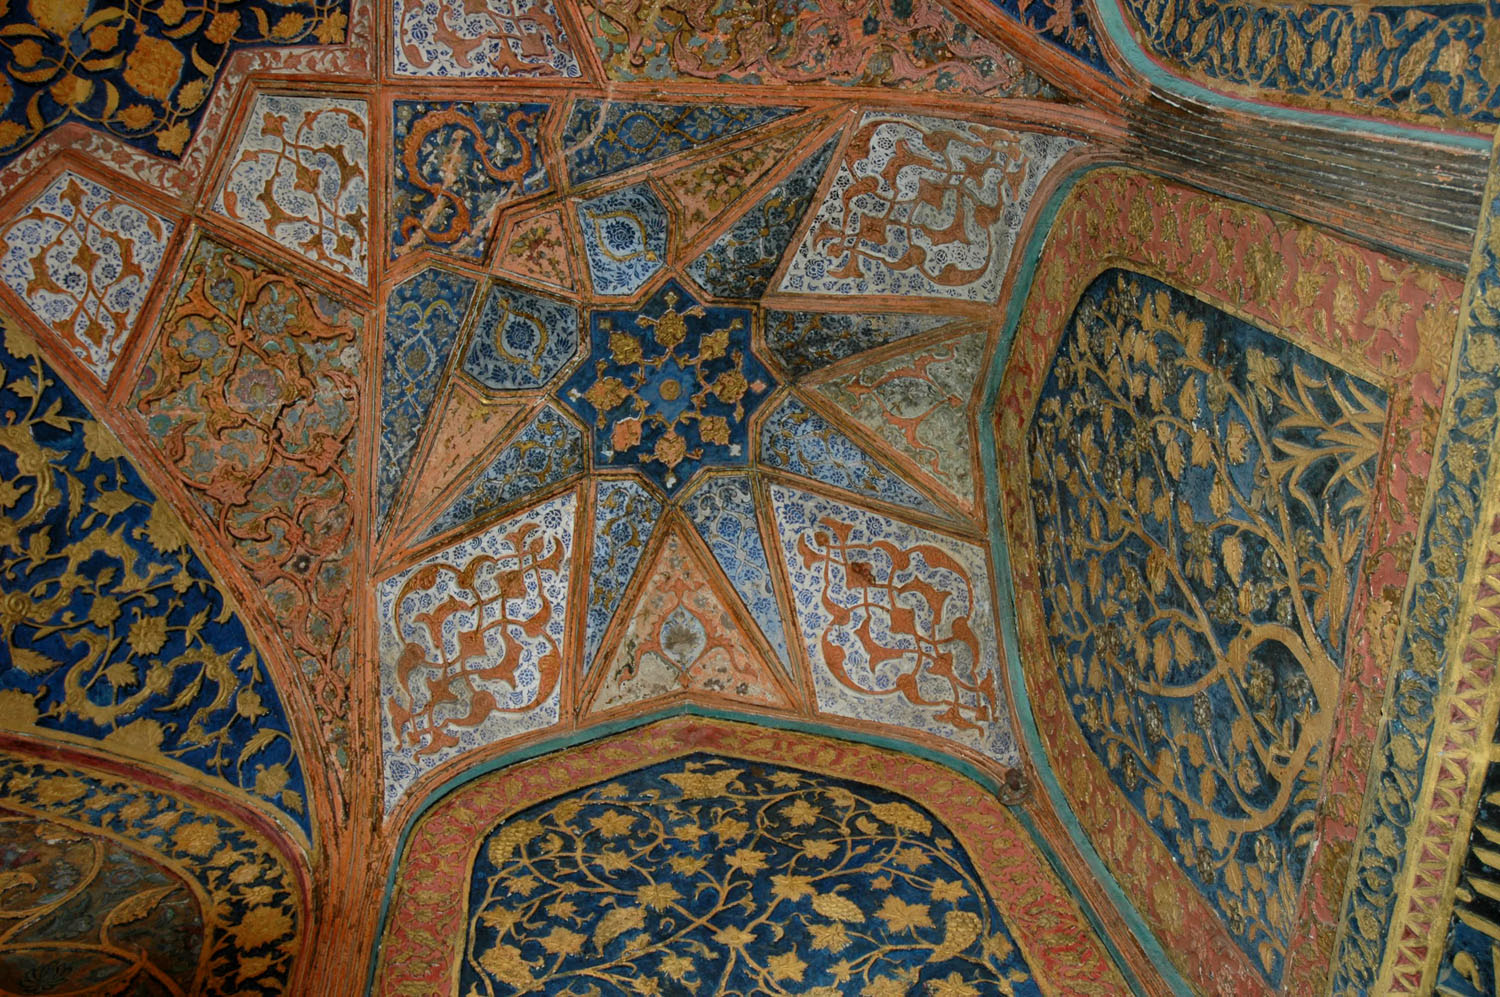 Floral detail on a ceiling and on walls, Sekandra, Akbar's Tomb, Agra, Uttar Pradesh, 18 March, 2007, photograph by Gordon Brent Ingram